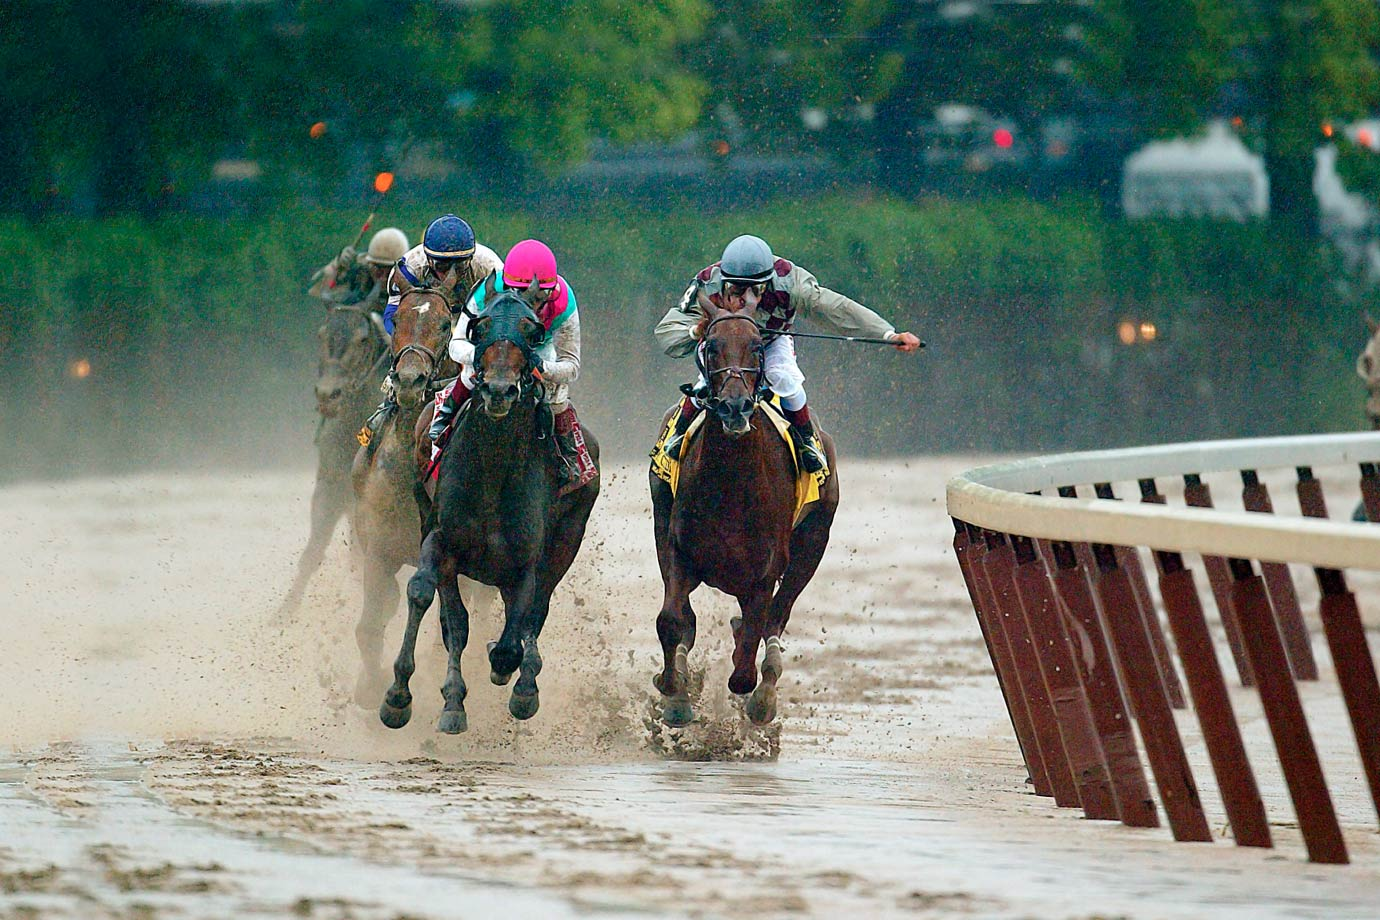 The New York-bred gelding upset favored Empire Maker in the Derby and rolled to a nine-length win at the Preakness. Trainer Bobby Frankel held Empire Maker out of the Preakness to have him rested for the Belmont. A sloppy track and fresh competition was enough to take out Funny Cide (right), who finished third. Empire Maker (left of Funny Cide) won the Belmont Stakes.